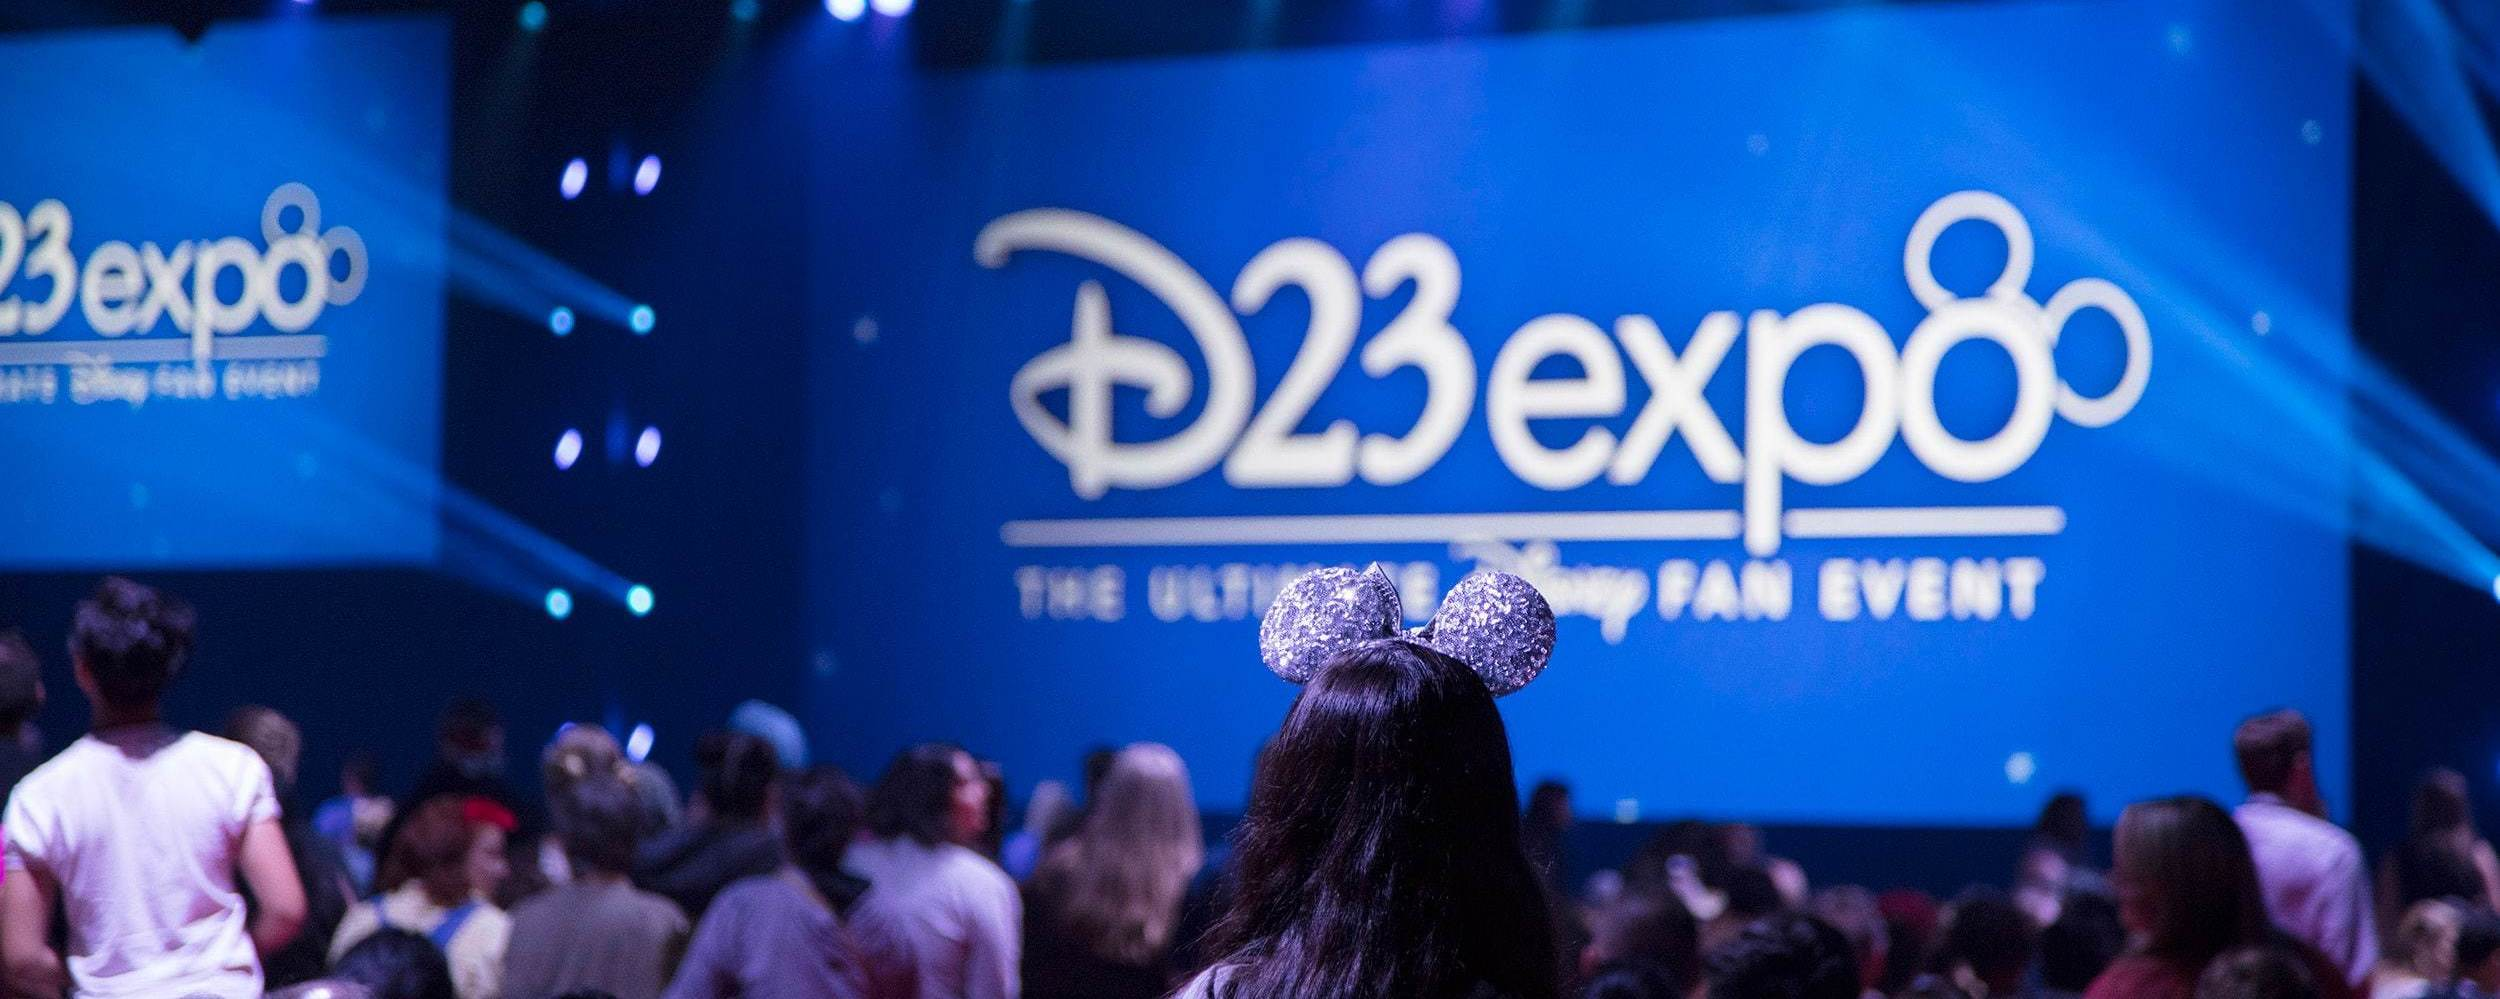 D23 expo audience